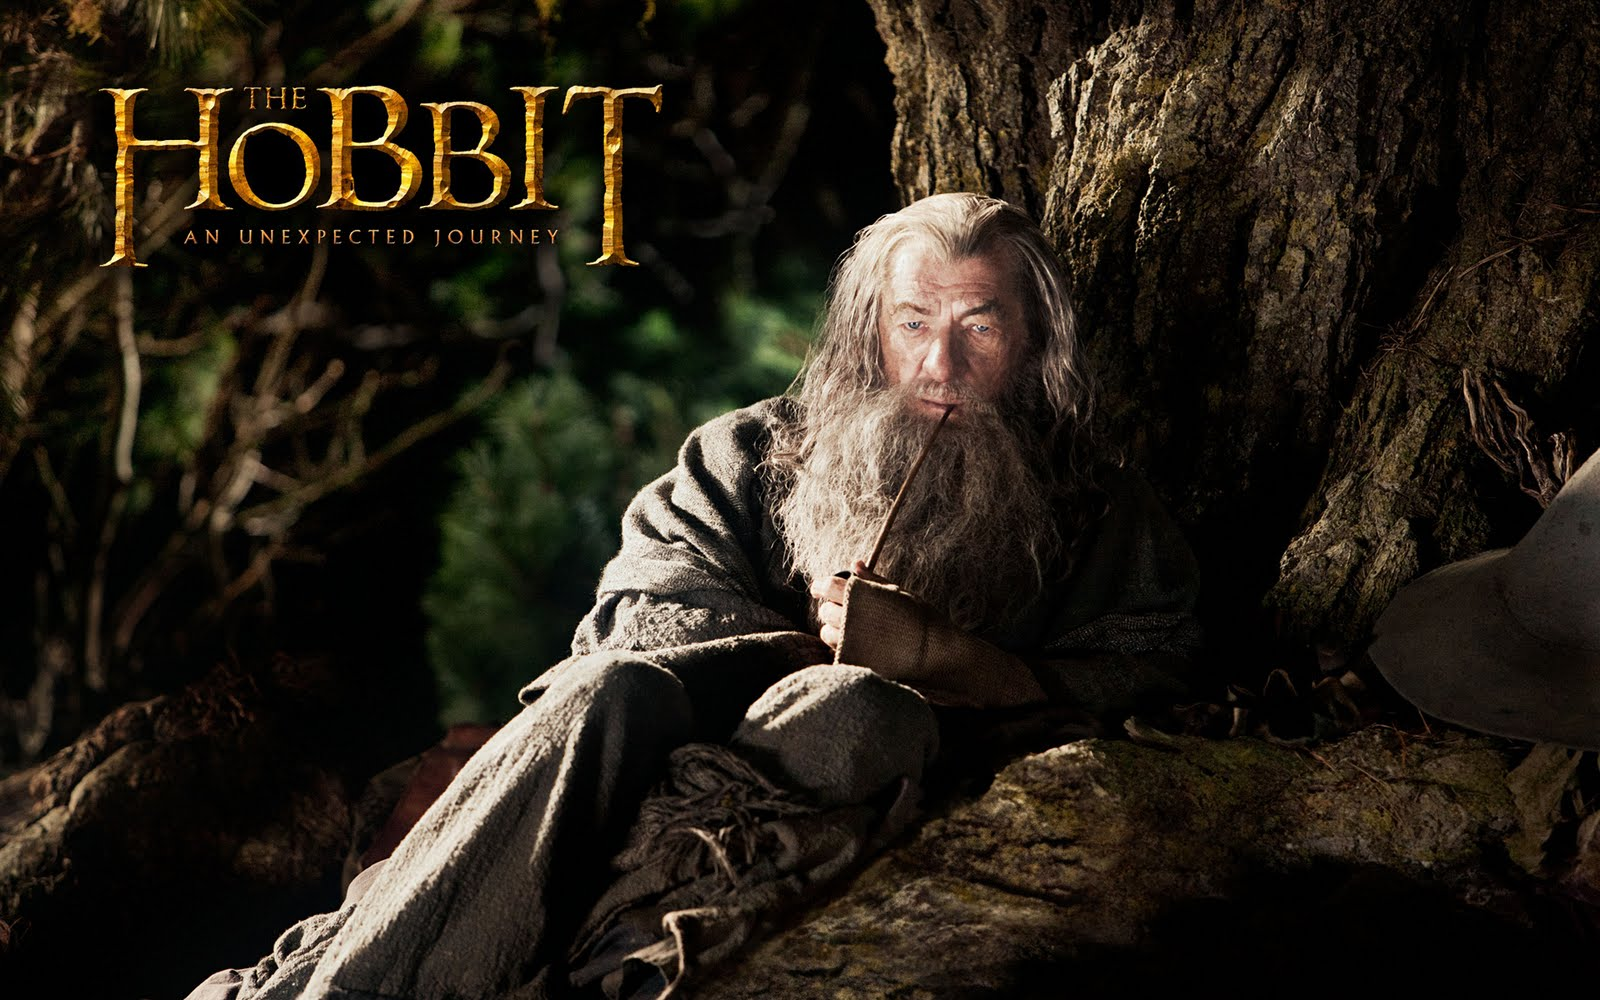 Wallpapers HD El Hobbit Wallpapers HD Wallpapers Fondo de Pantalla 1600x1000